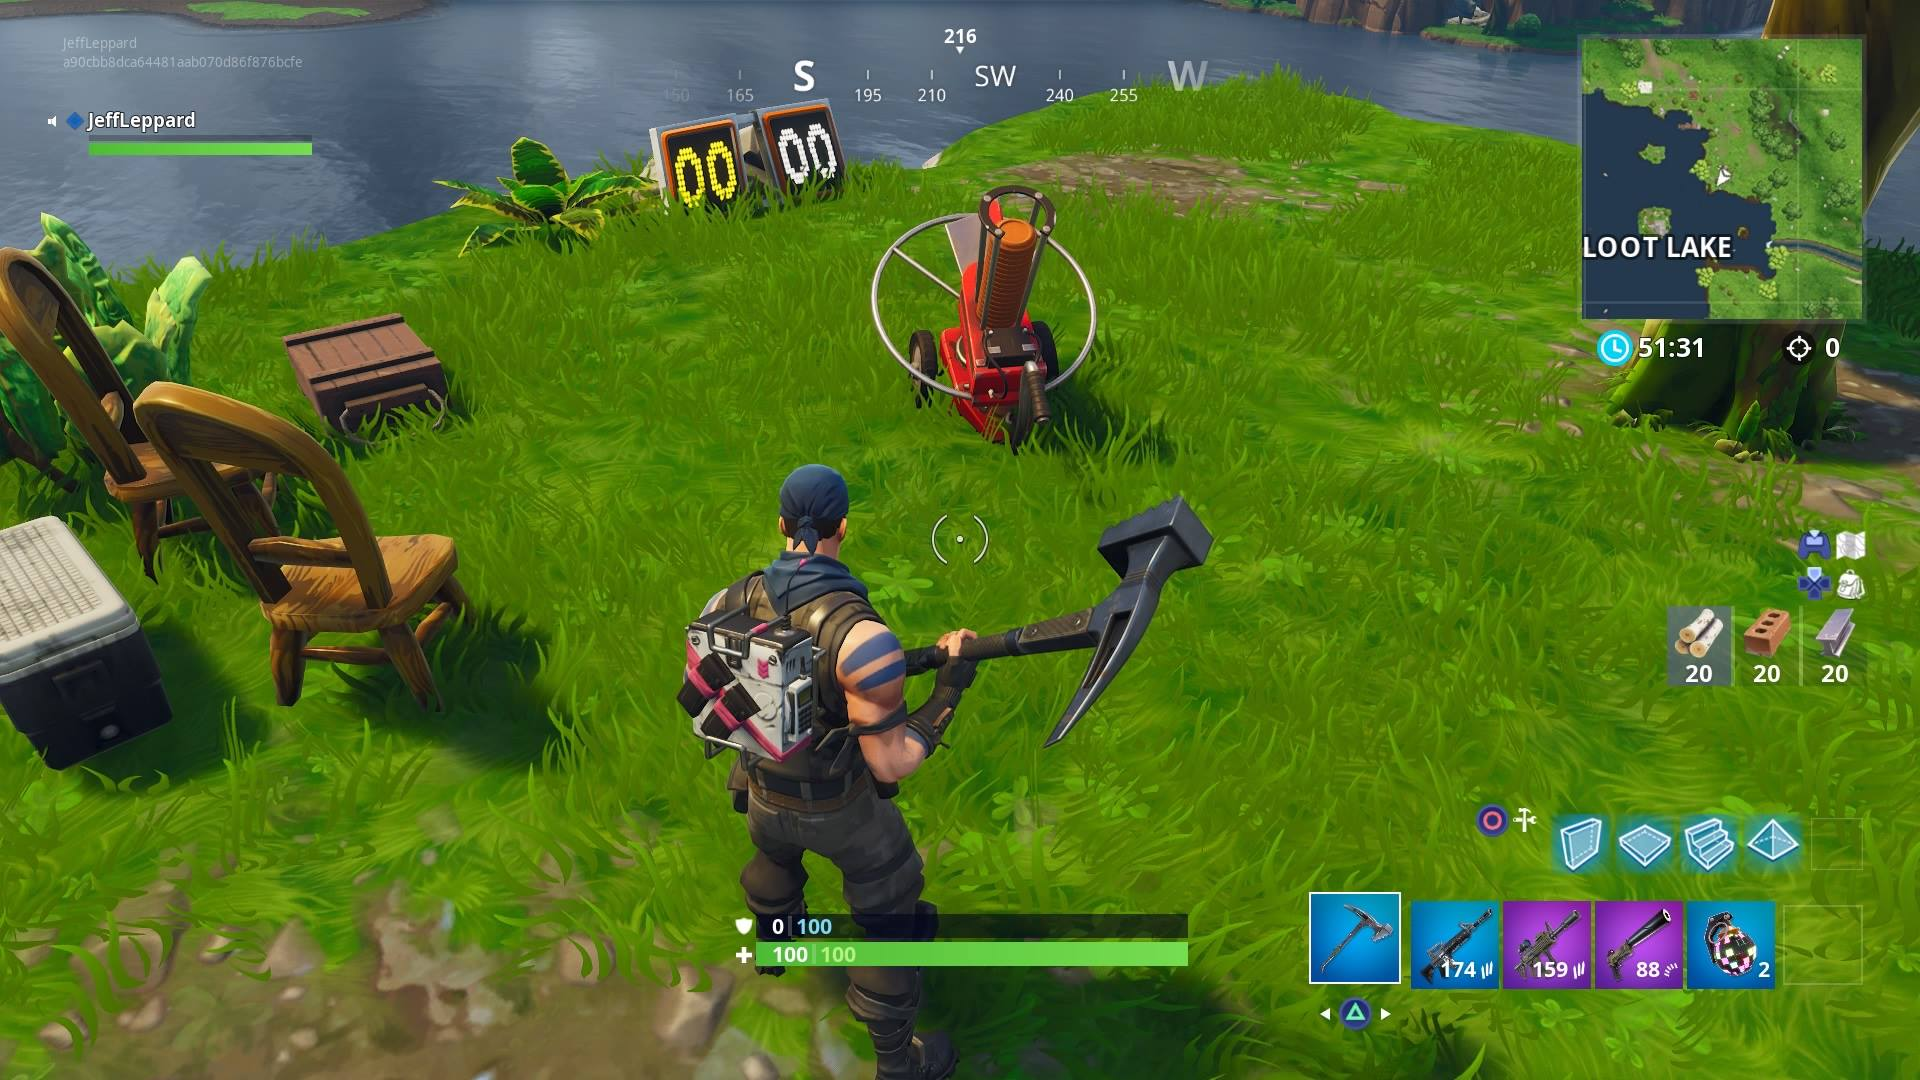 fortnite shoot a clay pigeon at different locations where are all the clay pigeons vg247 - all clay pigeon locations fortnite